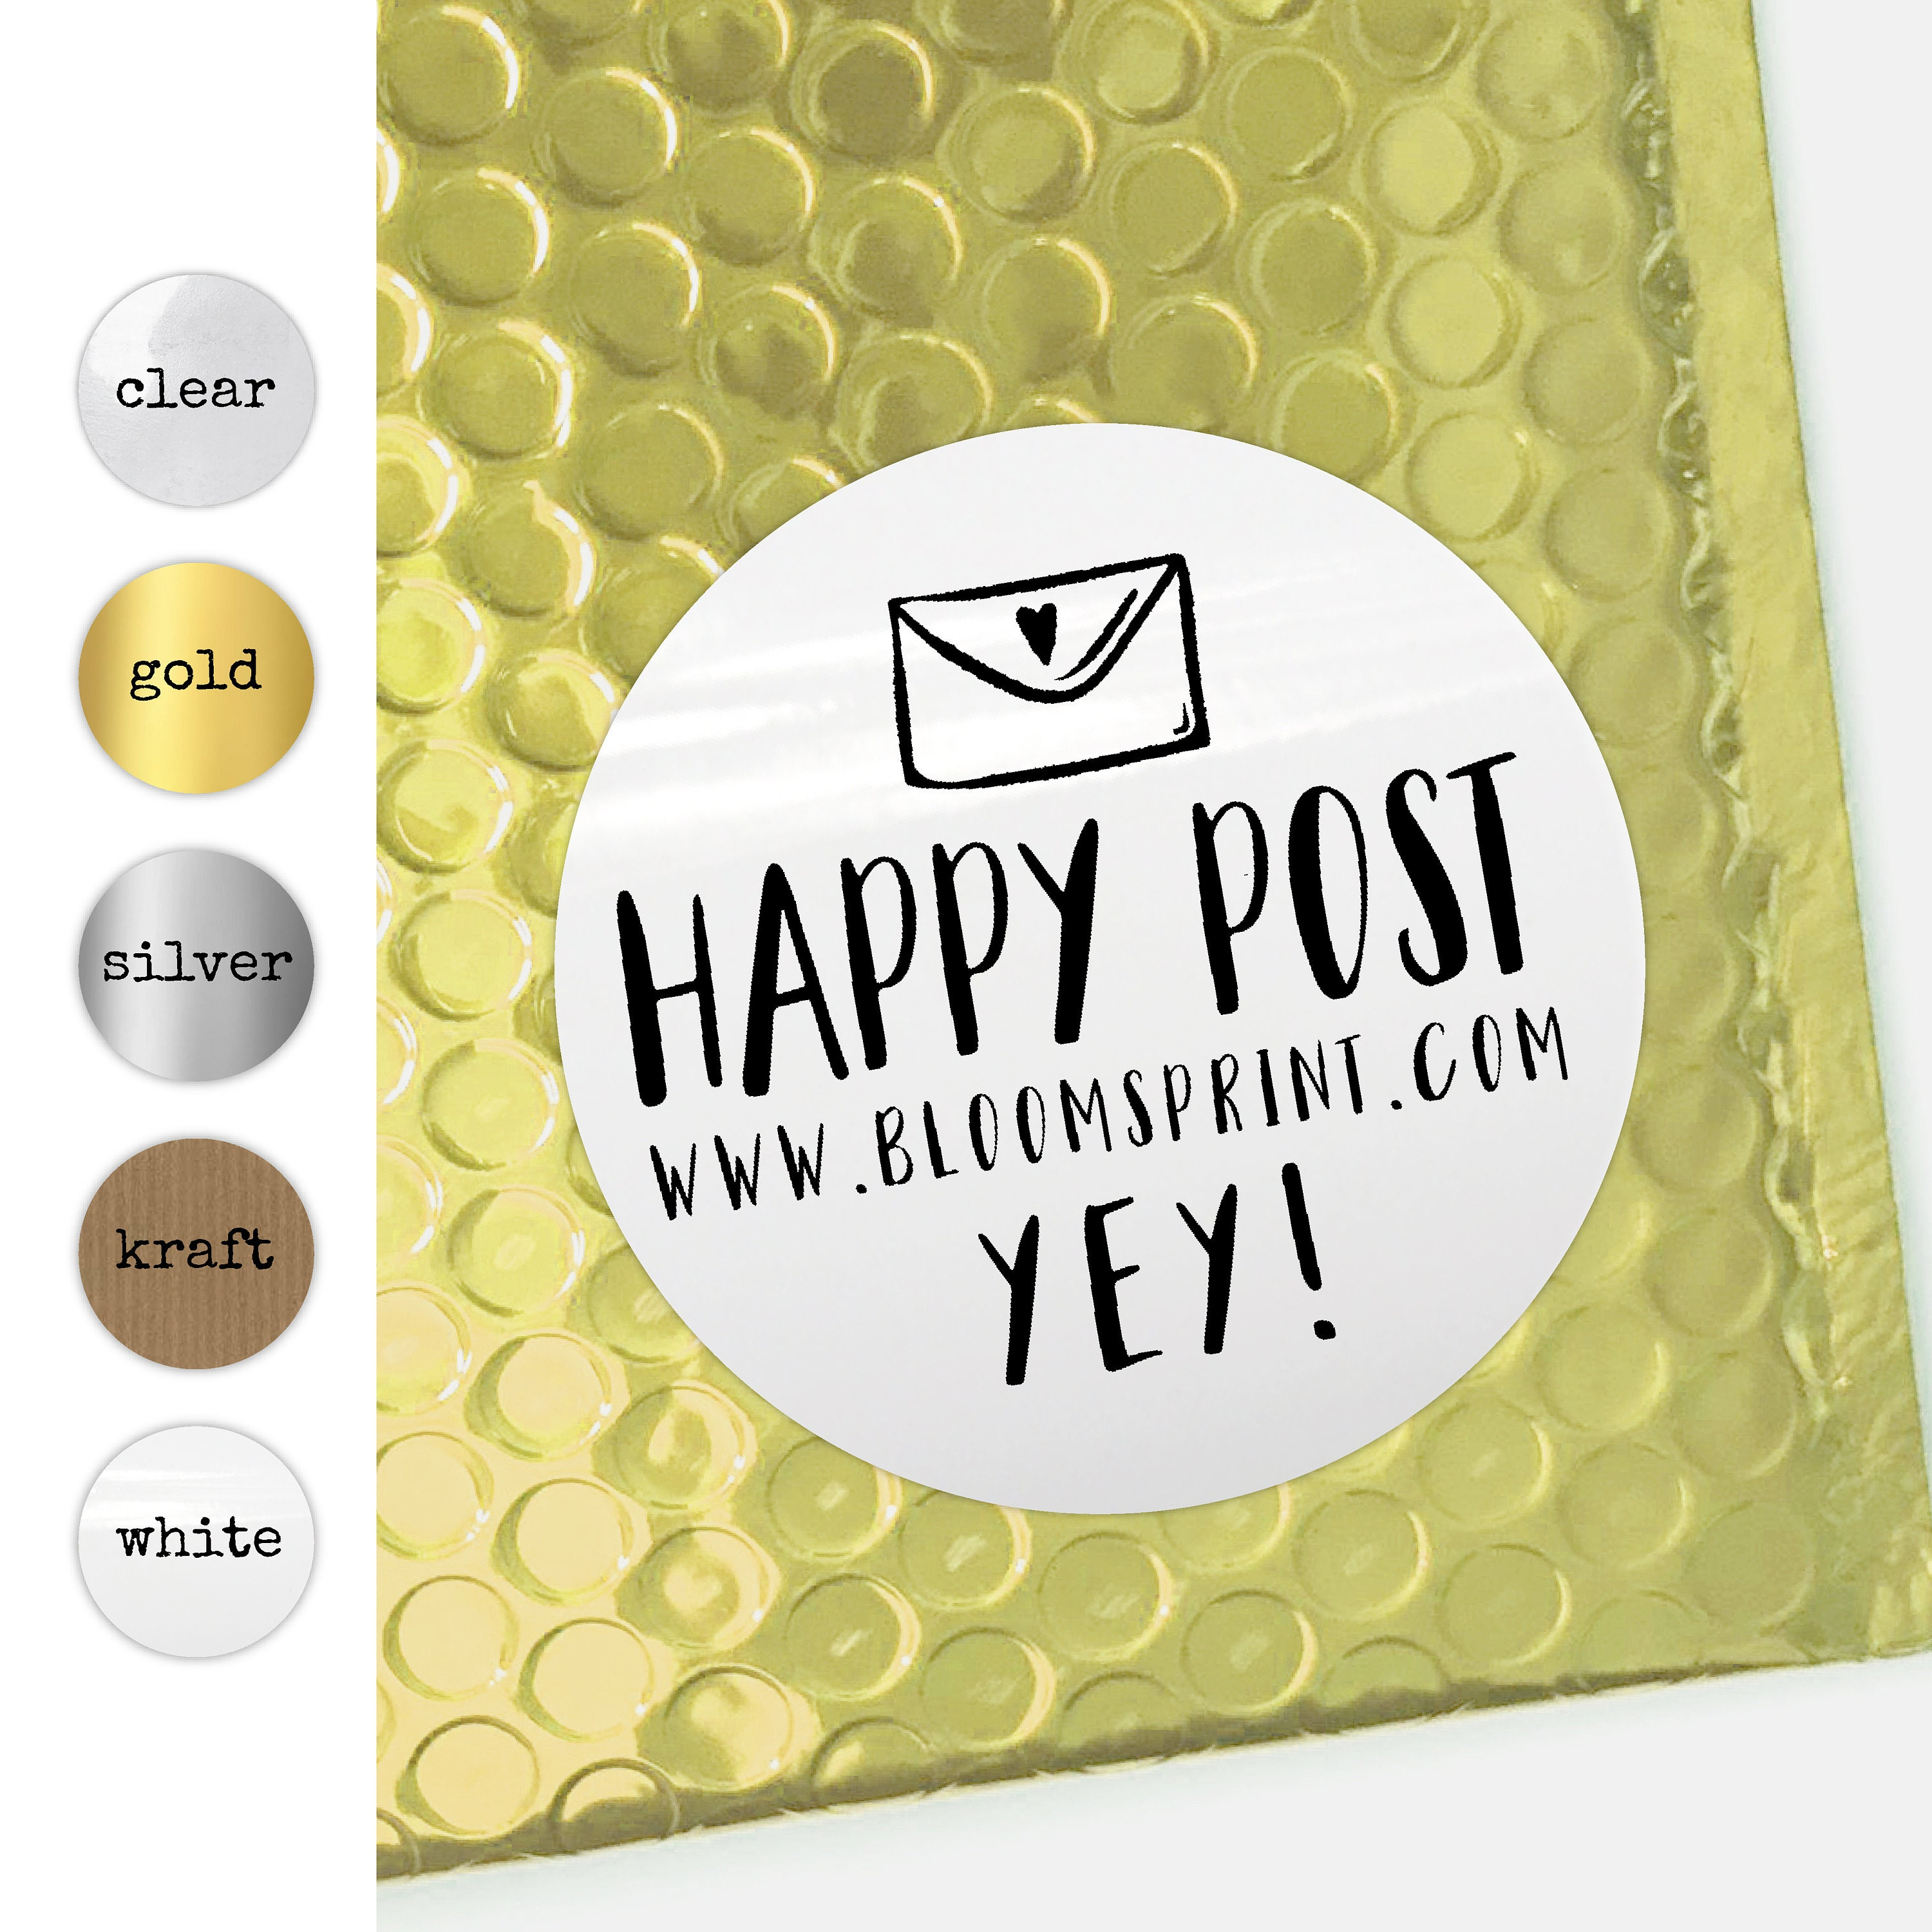 Happy post stickers personalised stickers round packaging stickers set small business labels custom stickers